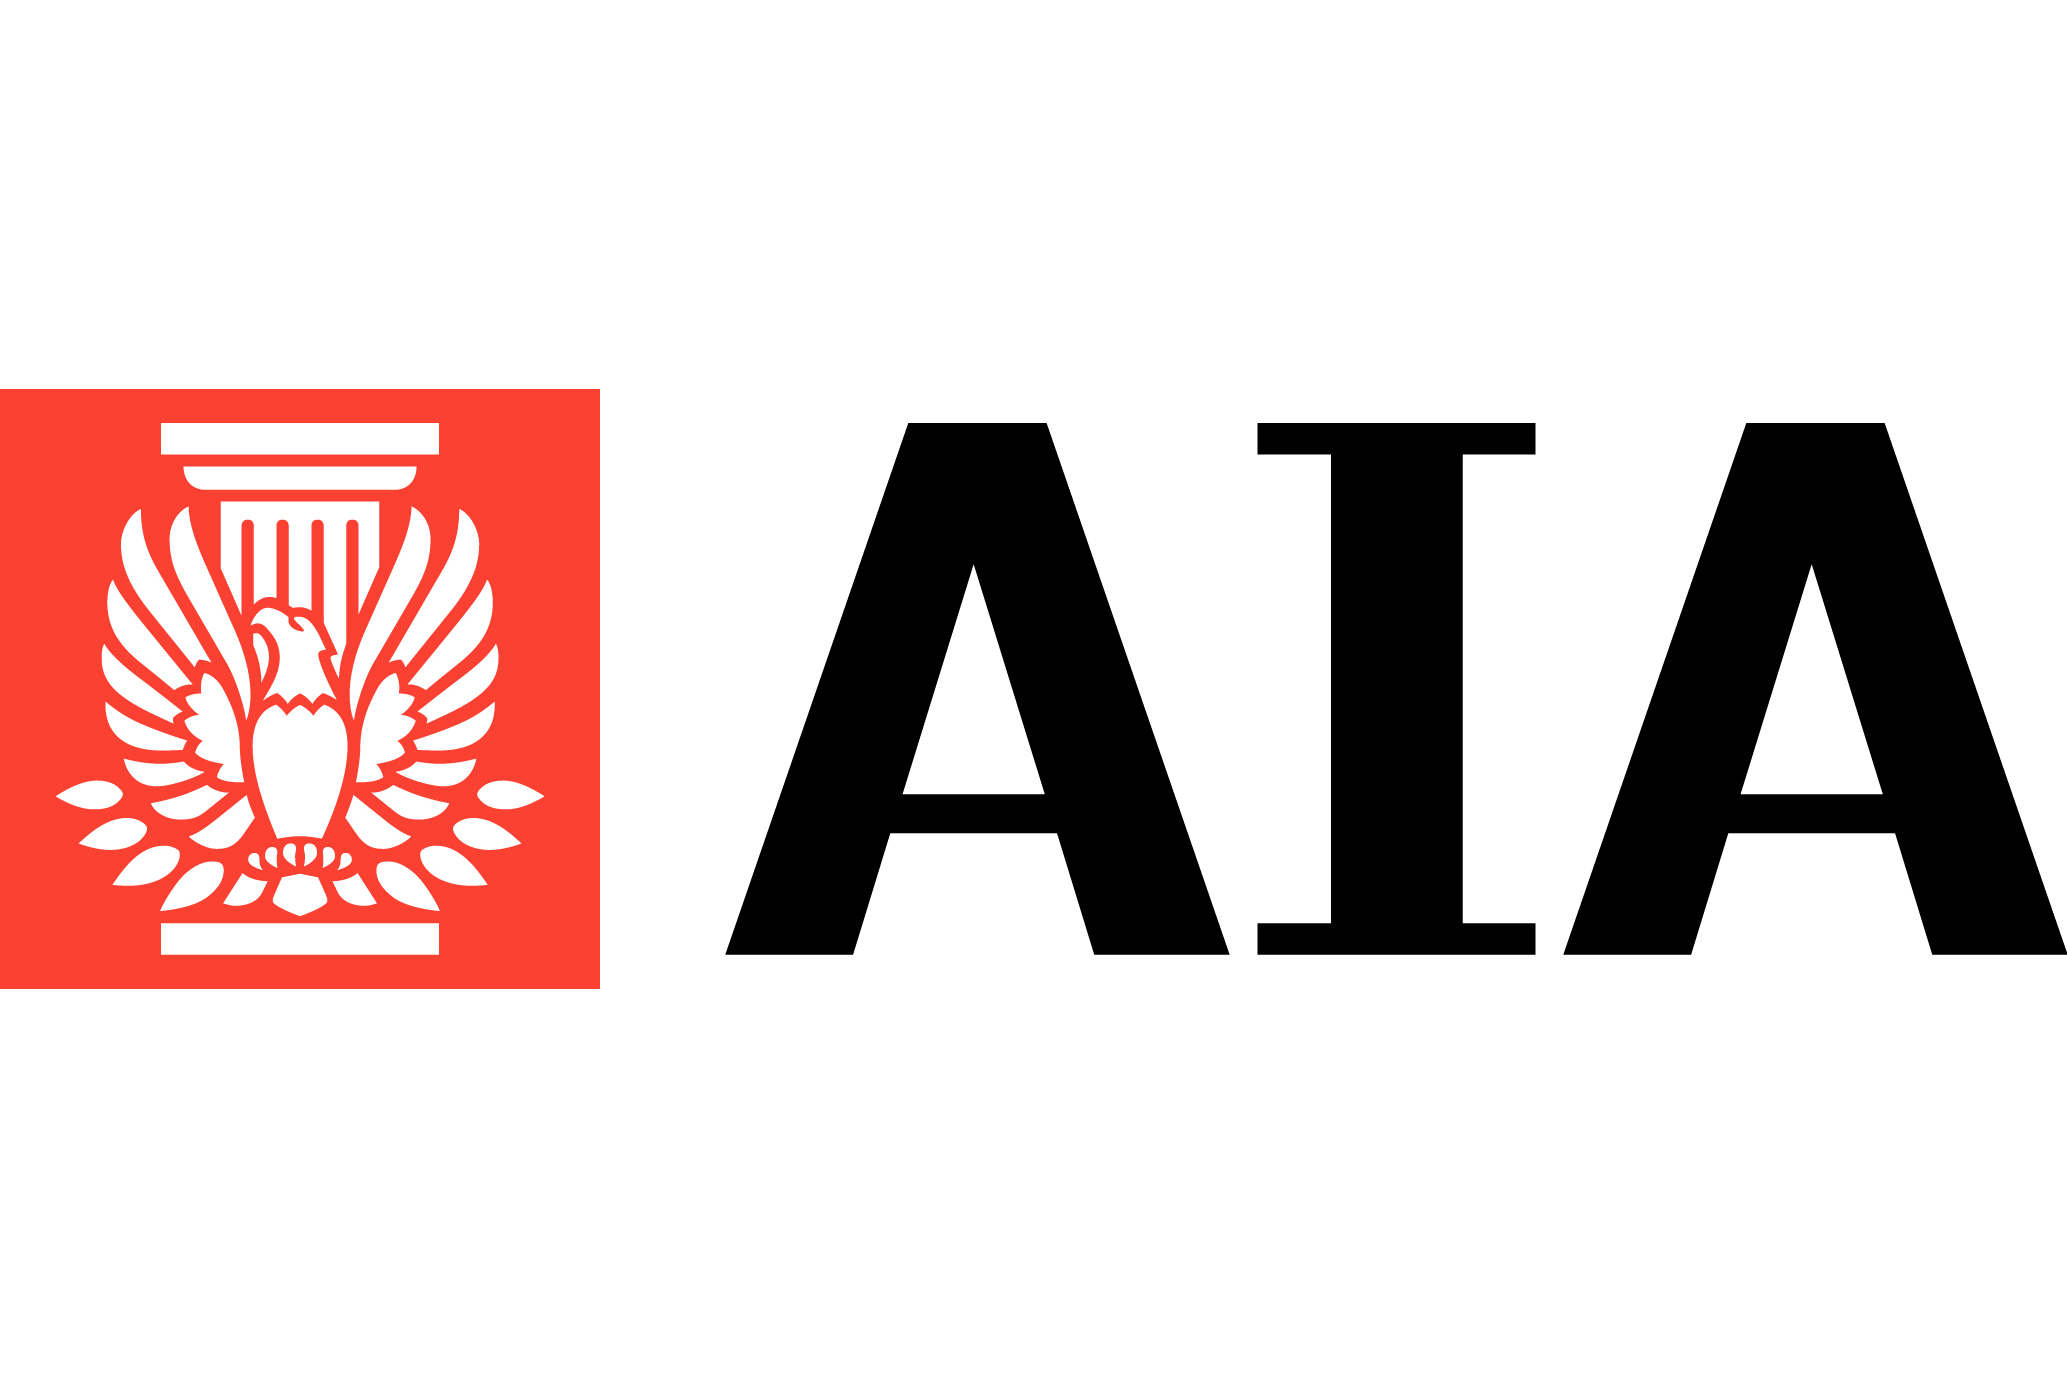 Aia says the senate tax reform draft shows marginal improvements aia says the senate tax reform draft shows marginal improvements architect magazine government entities legislation tax credits policy xflitez Choice Image